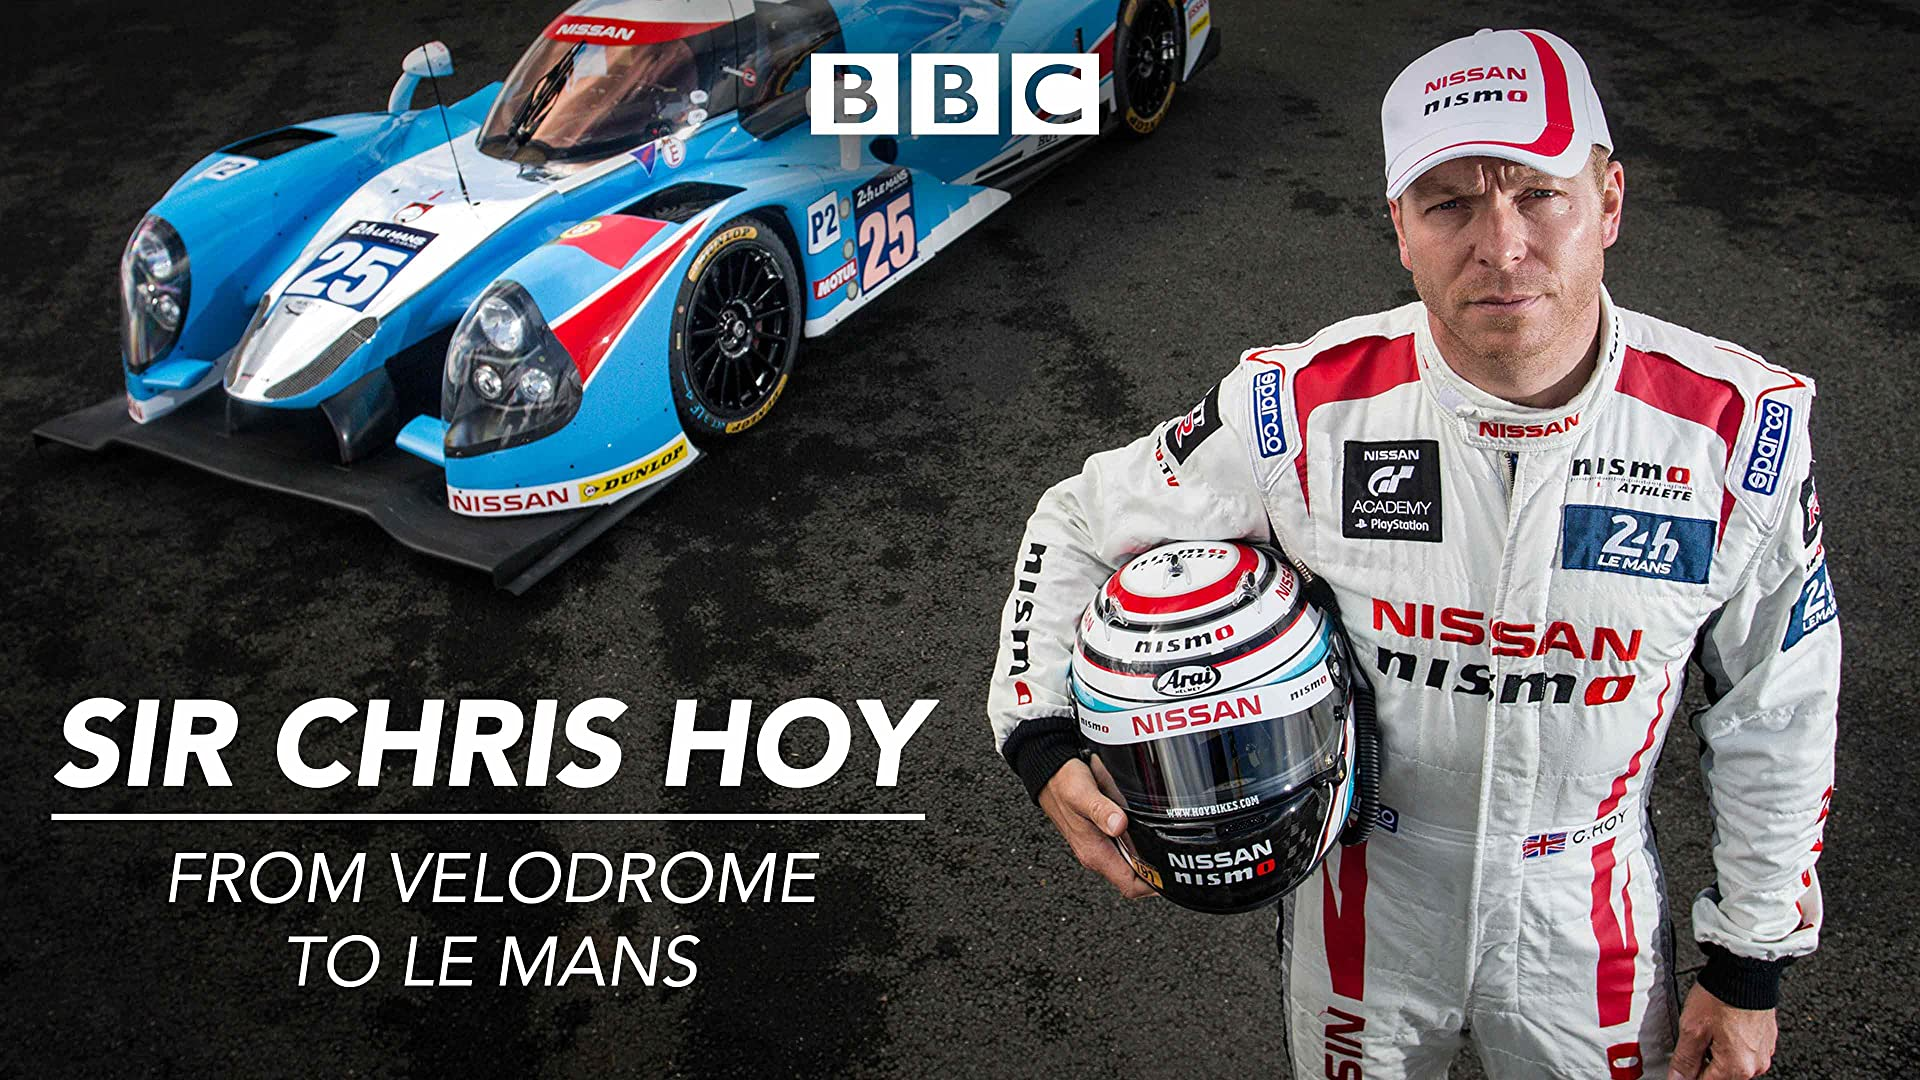 Sir Chris Hoy - From Velodrome to Le Mans